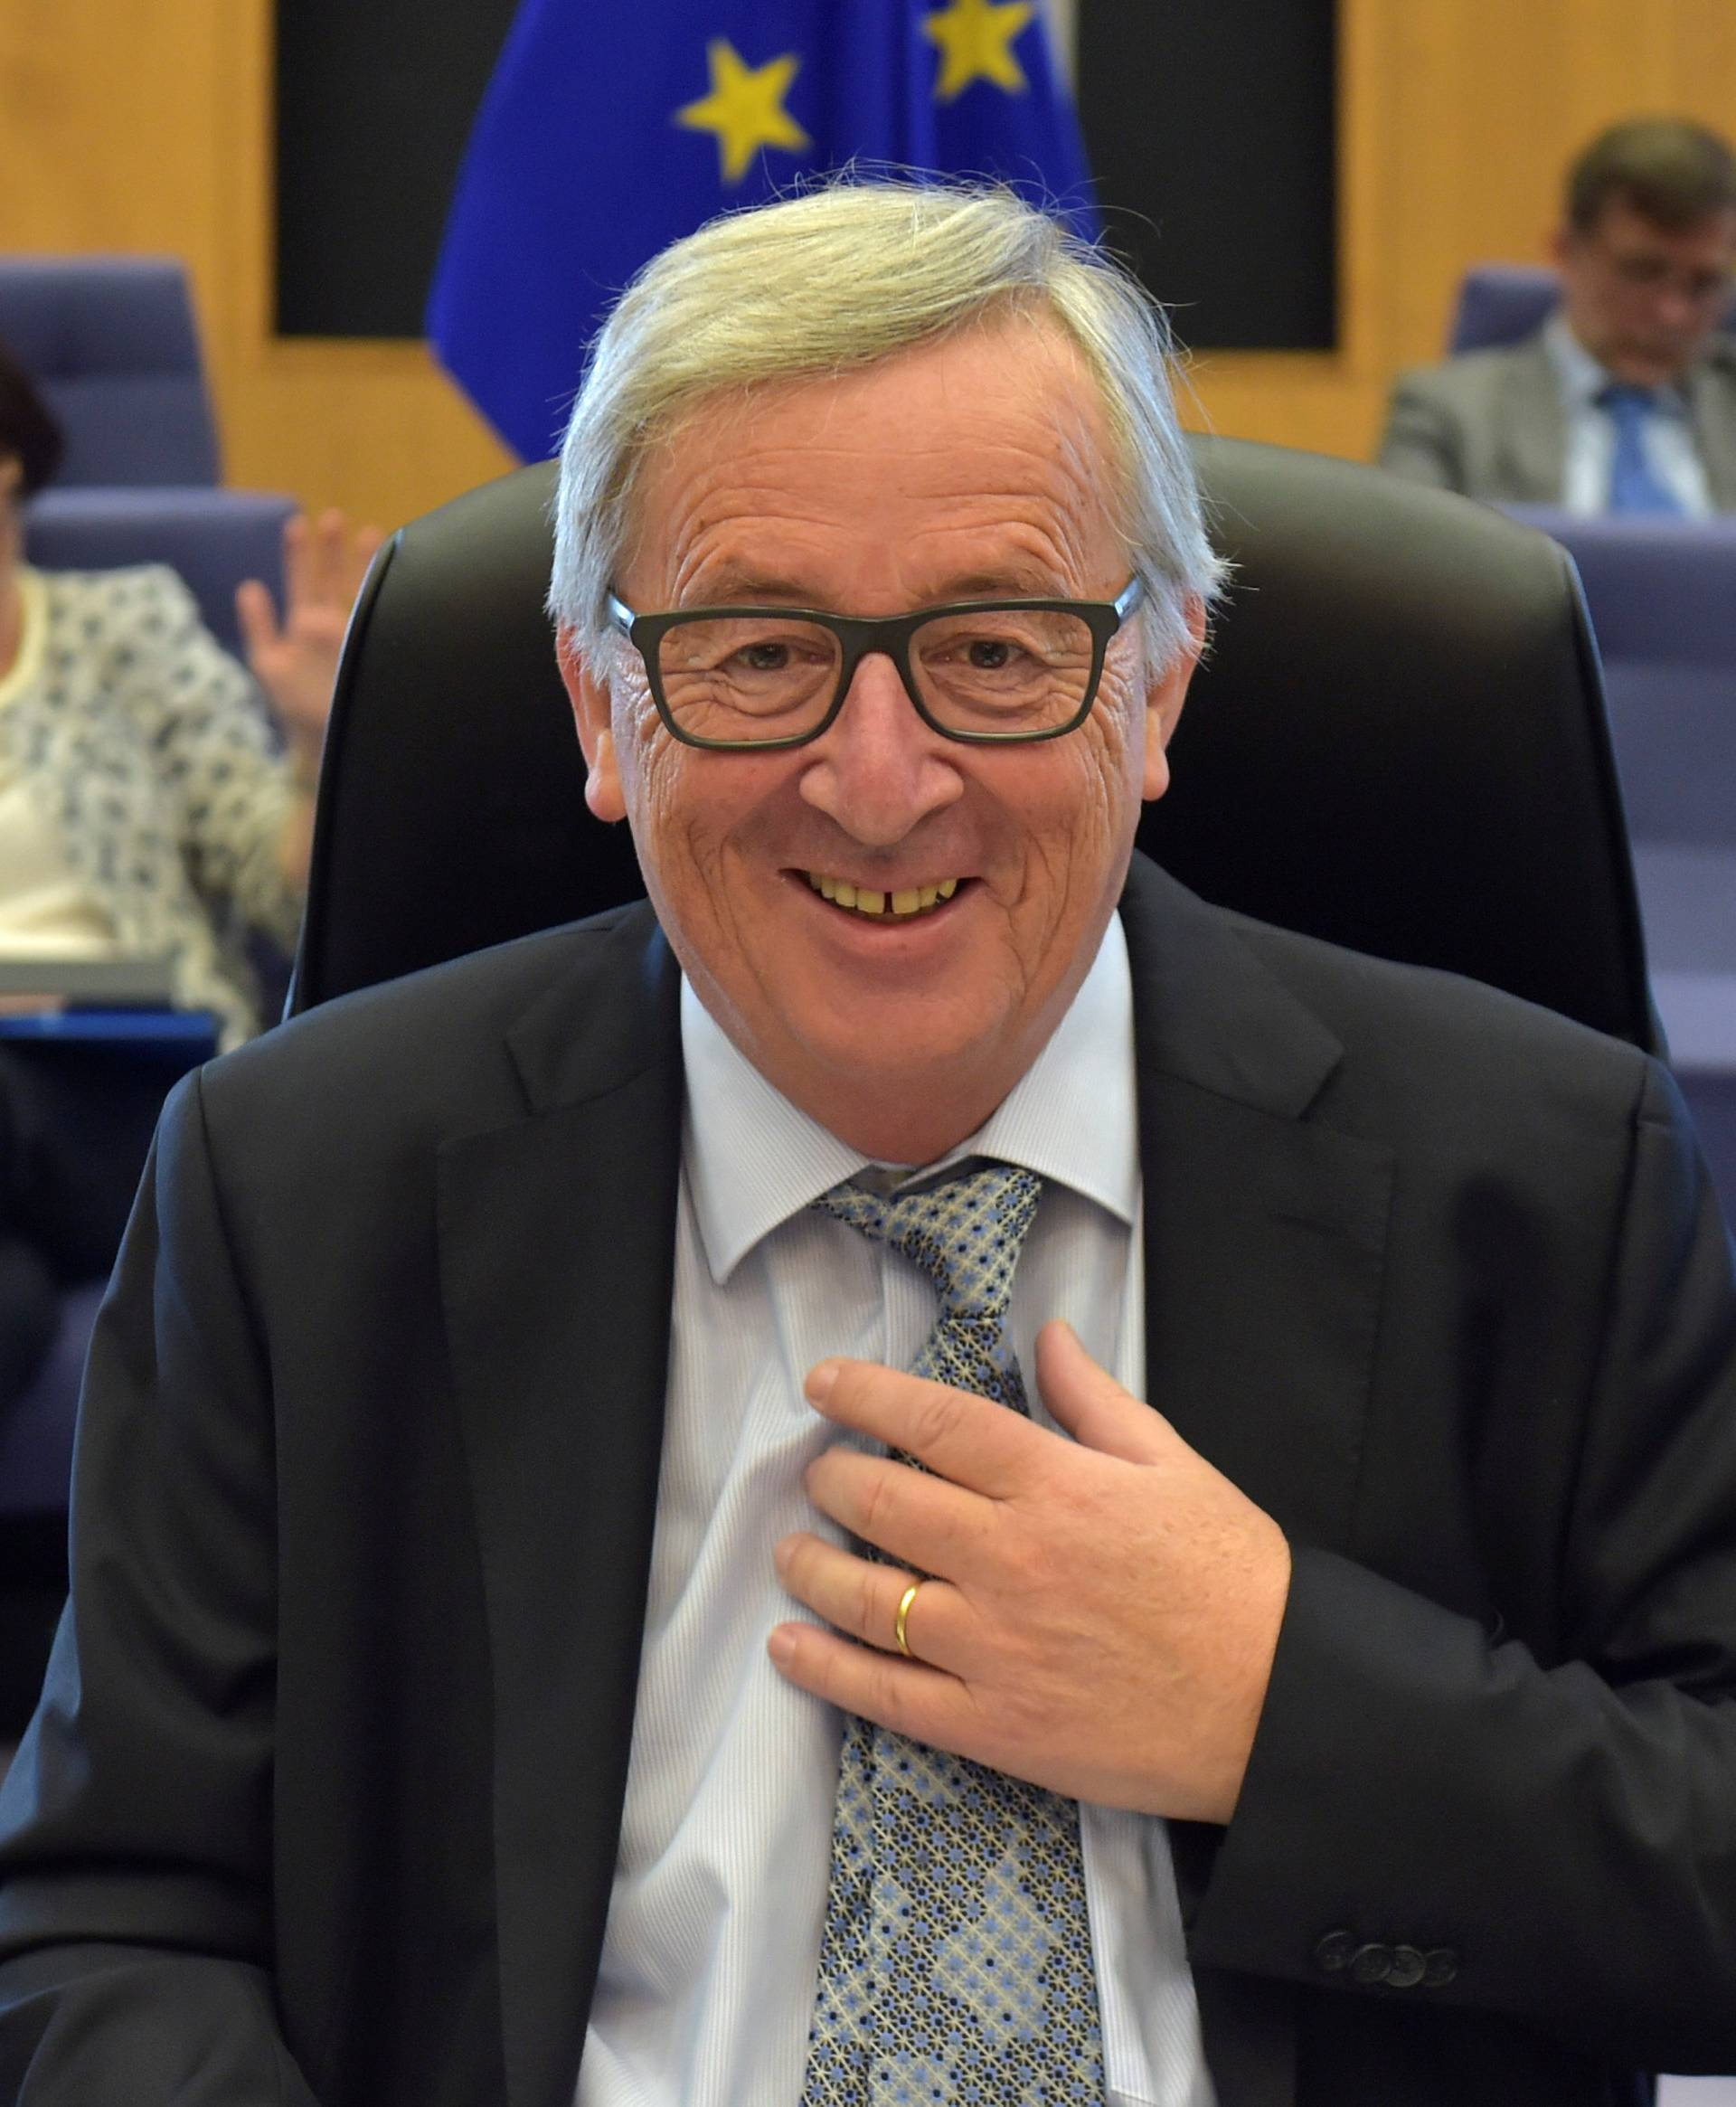 EC President Juncker gestures before a meeting of the College of Commissioners in Brussels